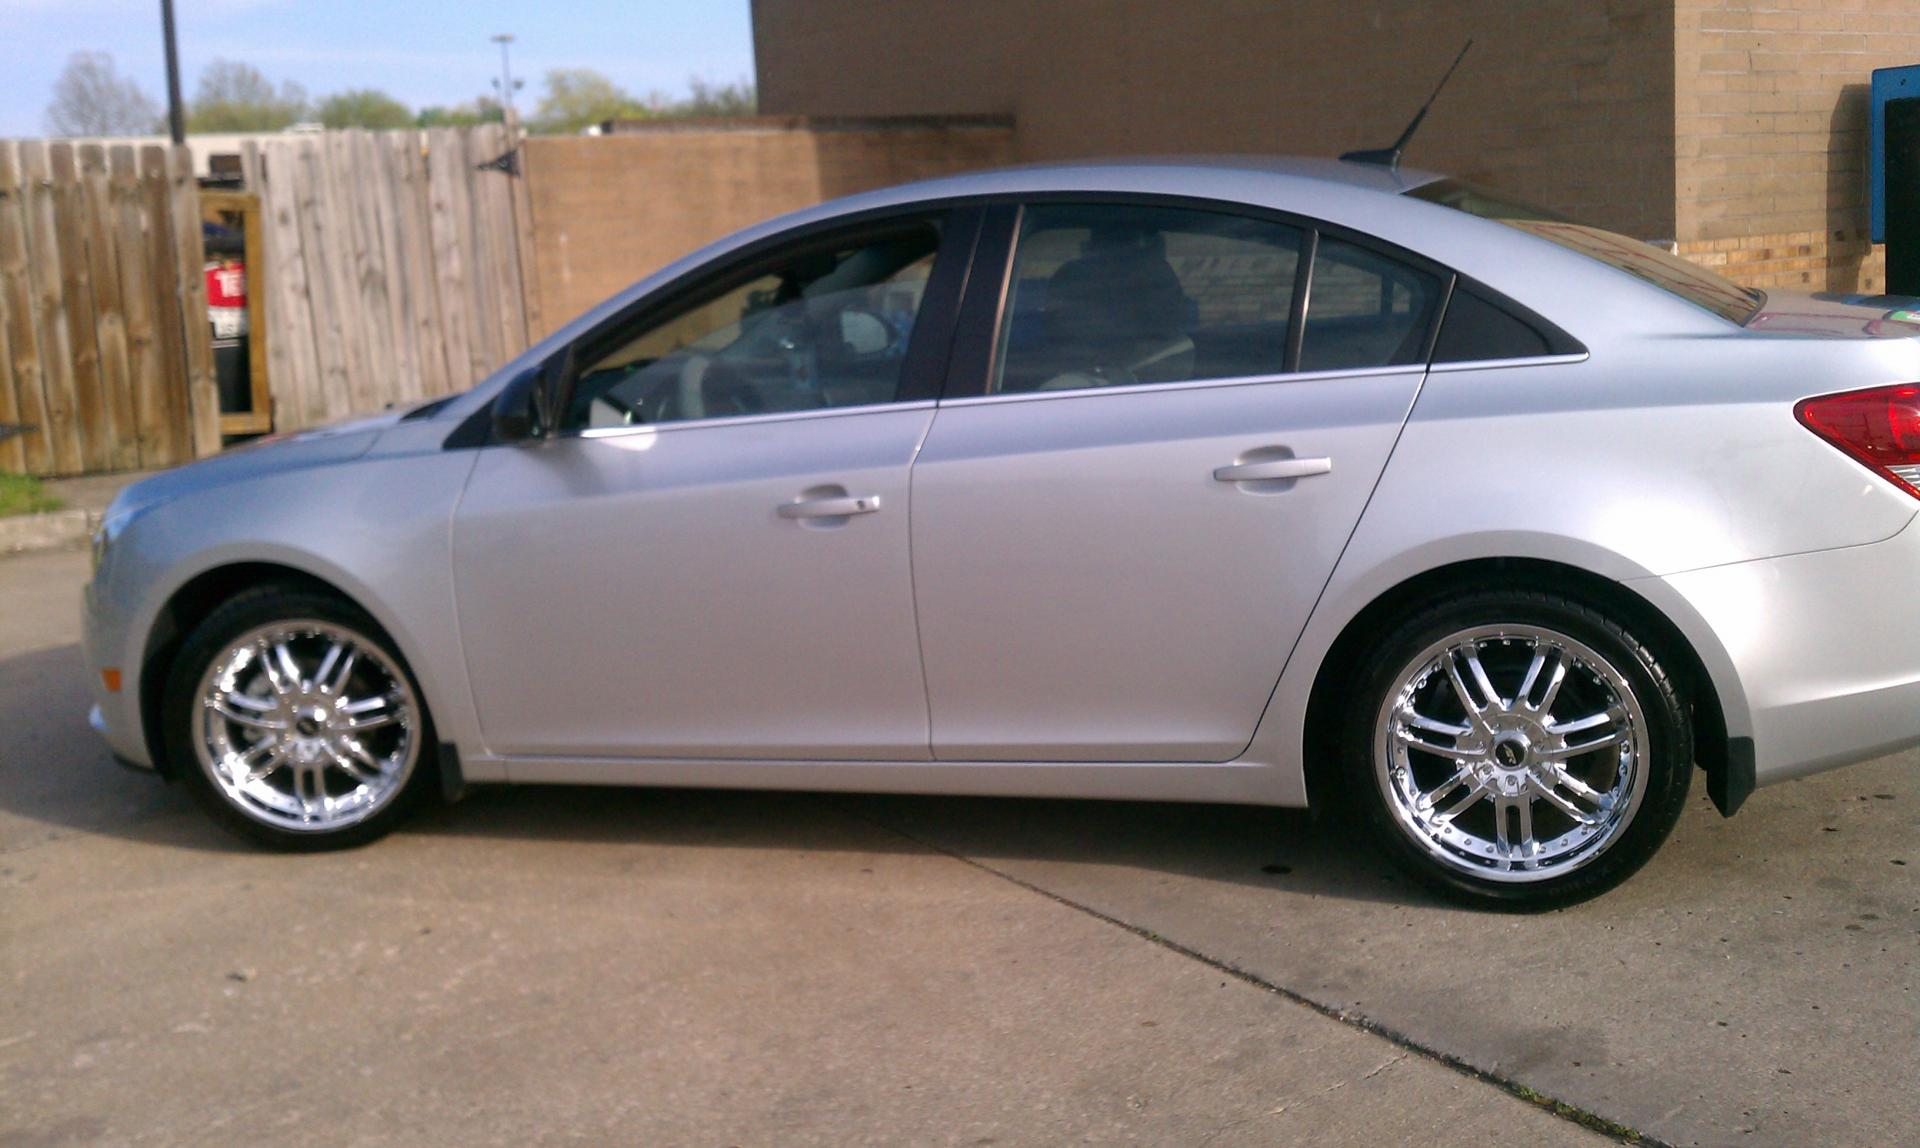 2012 Chevy Cruze Tire Size >> Nice Wheels On The Chevy Cruze Chevrolet Cruze Forums